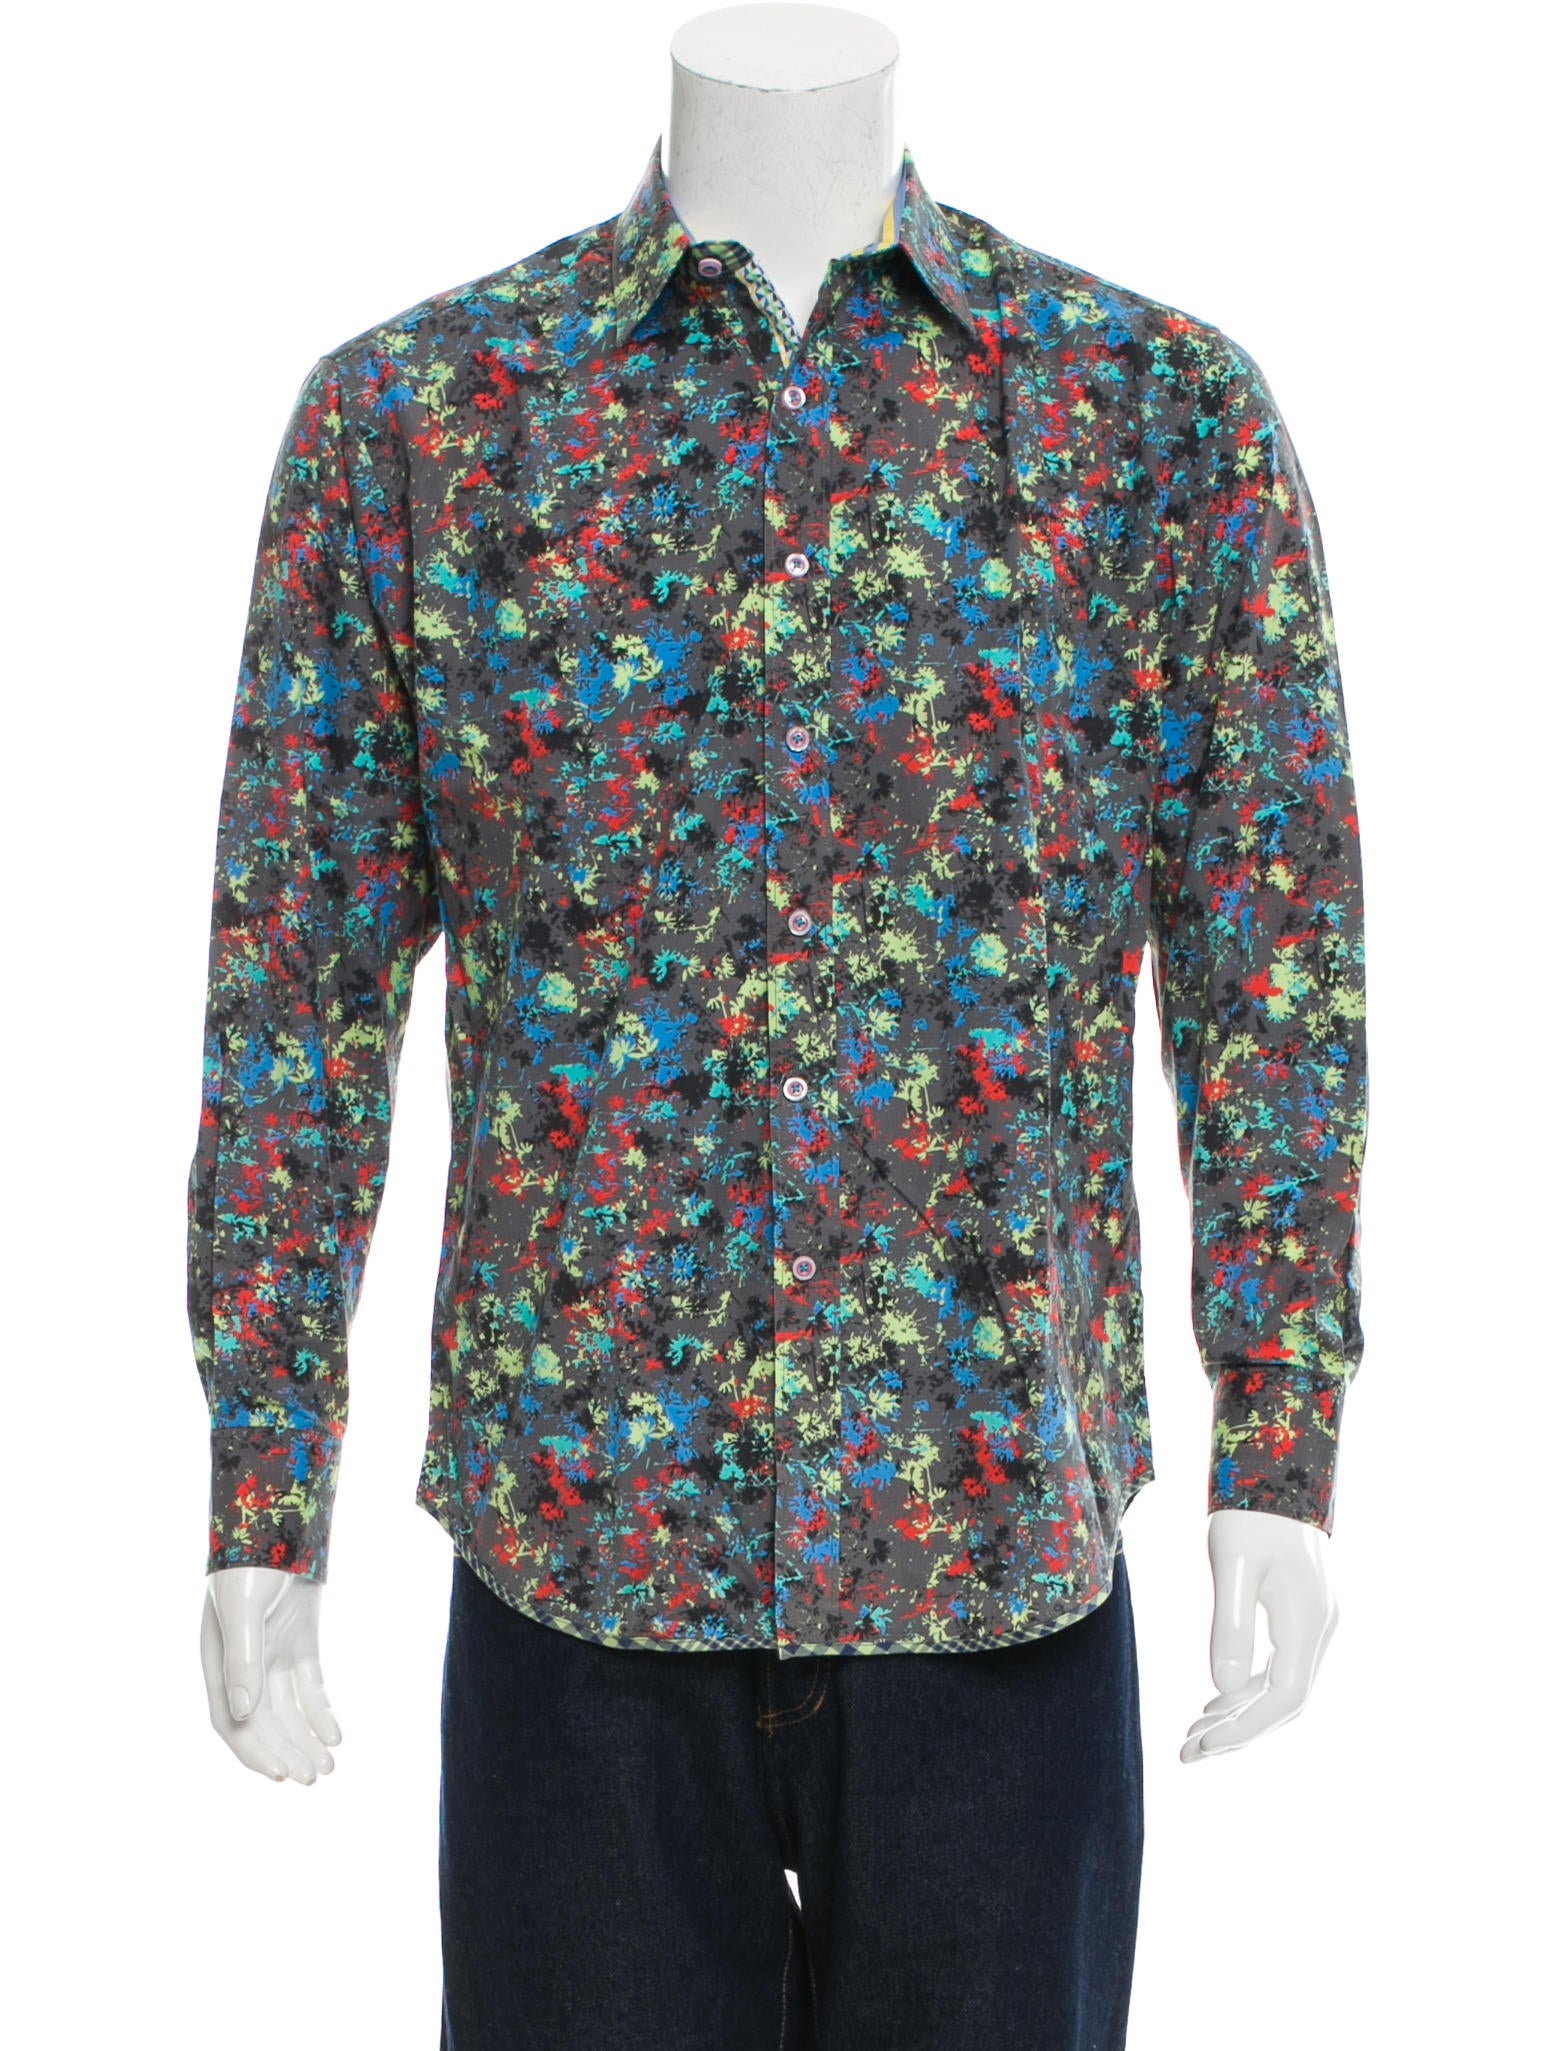 Robert graham printed button up shirt clothing for Where are robert graham shirts made